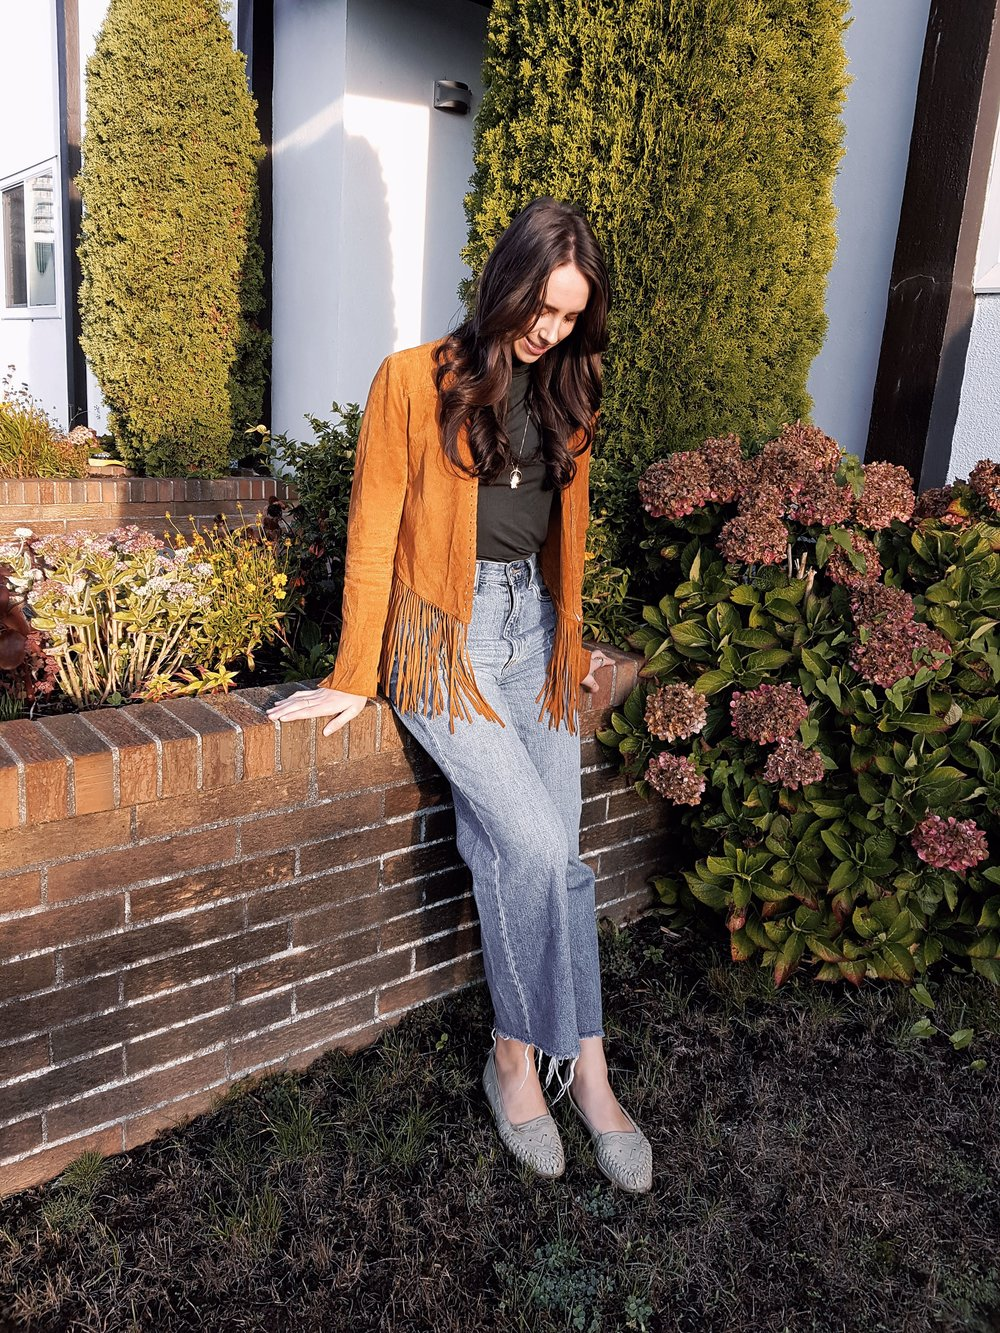 TUESDAY - Dynamite turtleneck, Forever21 jacket, BDG jeans, vintage shoes*My fave outfit of the week. My style is heavily influenced by the 70's. If I had a time machine, I'd love to visit the decade of fringe-everything, long hair and Woodstock.